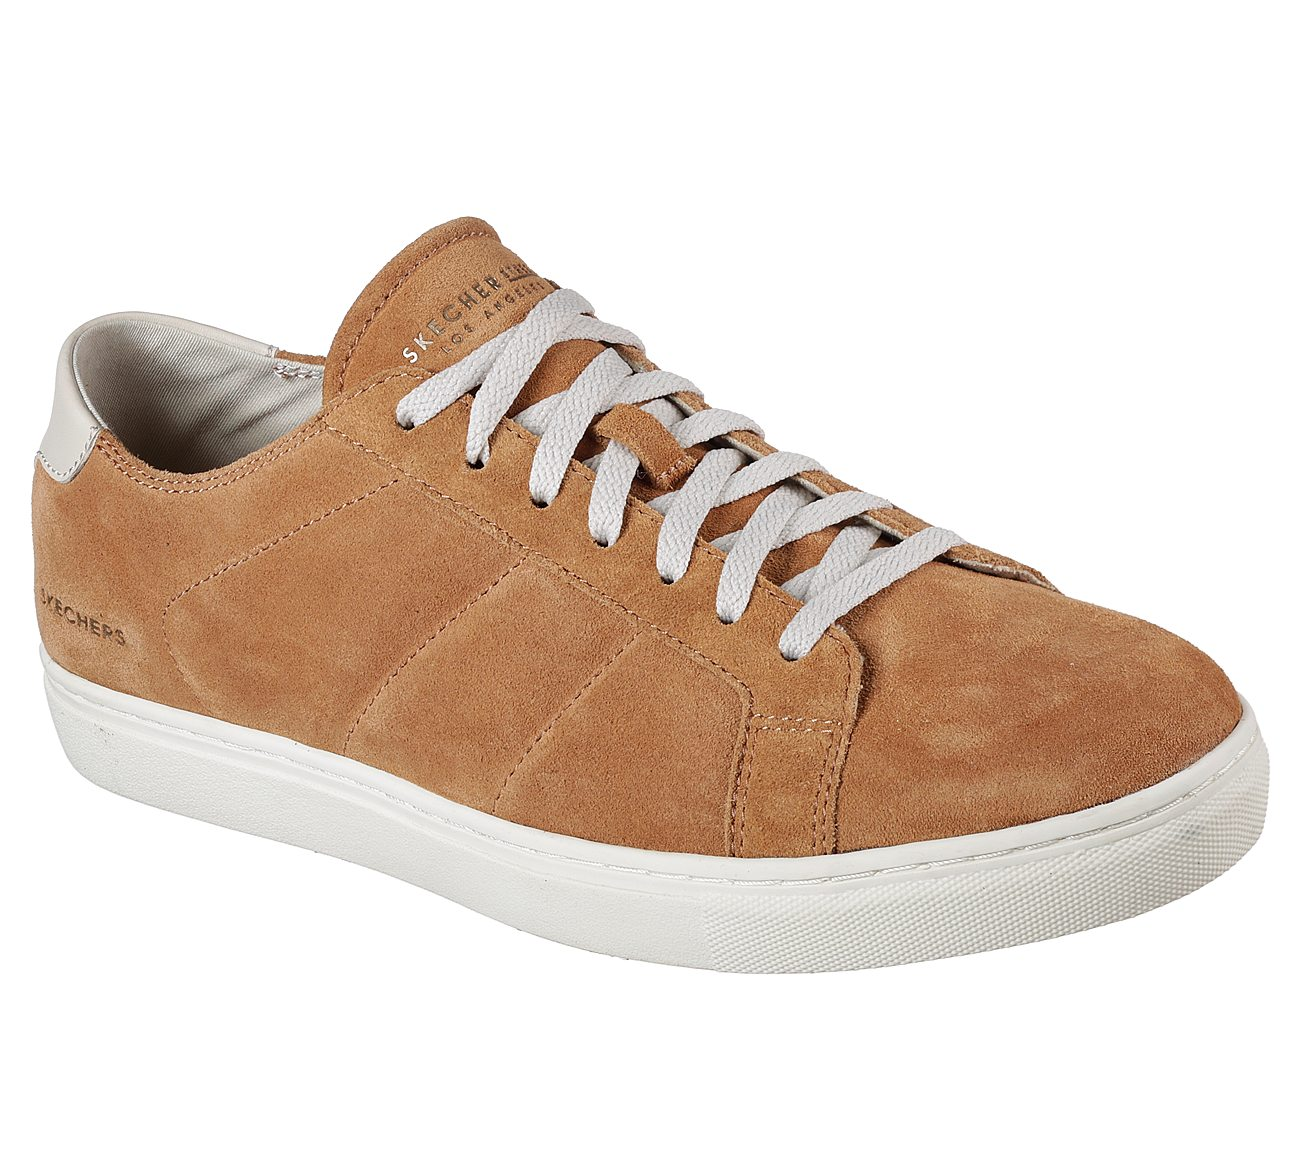 c1dfee2bc1a Buy SKECHERS Venice - Molter Sport Shoes only  46.00